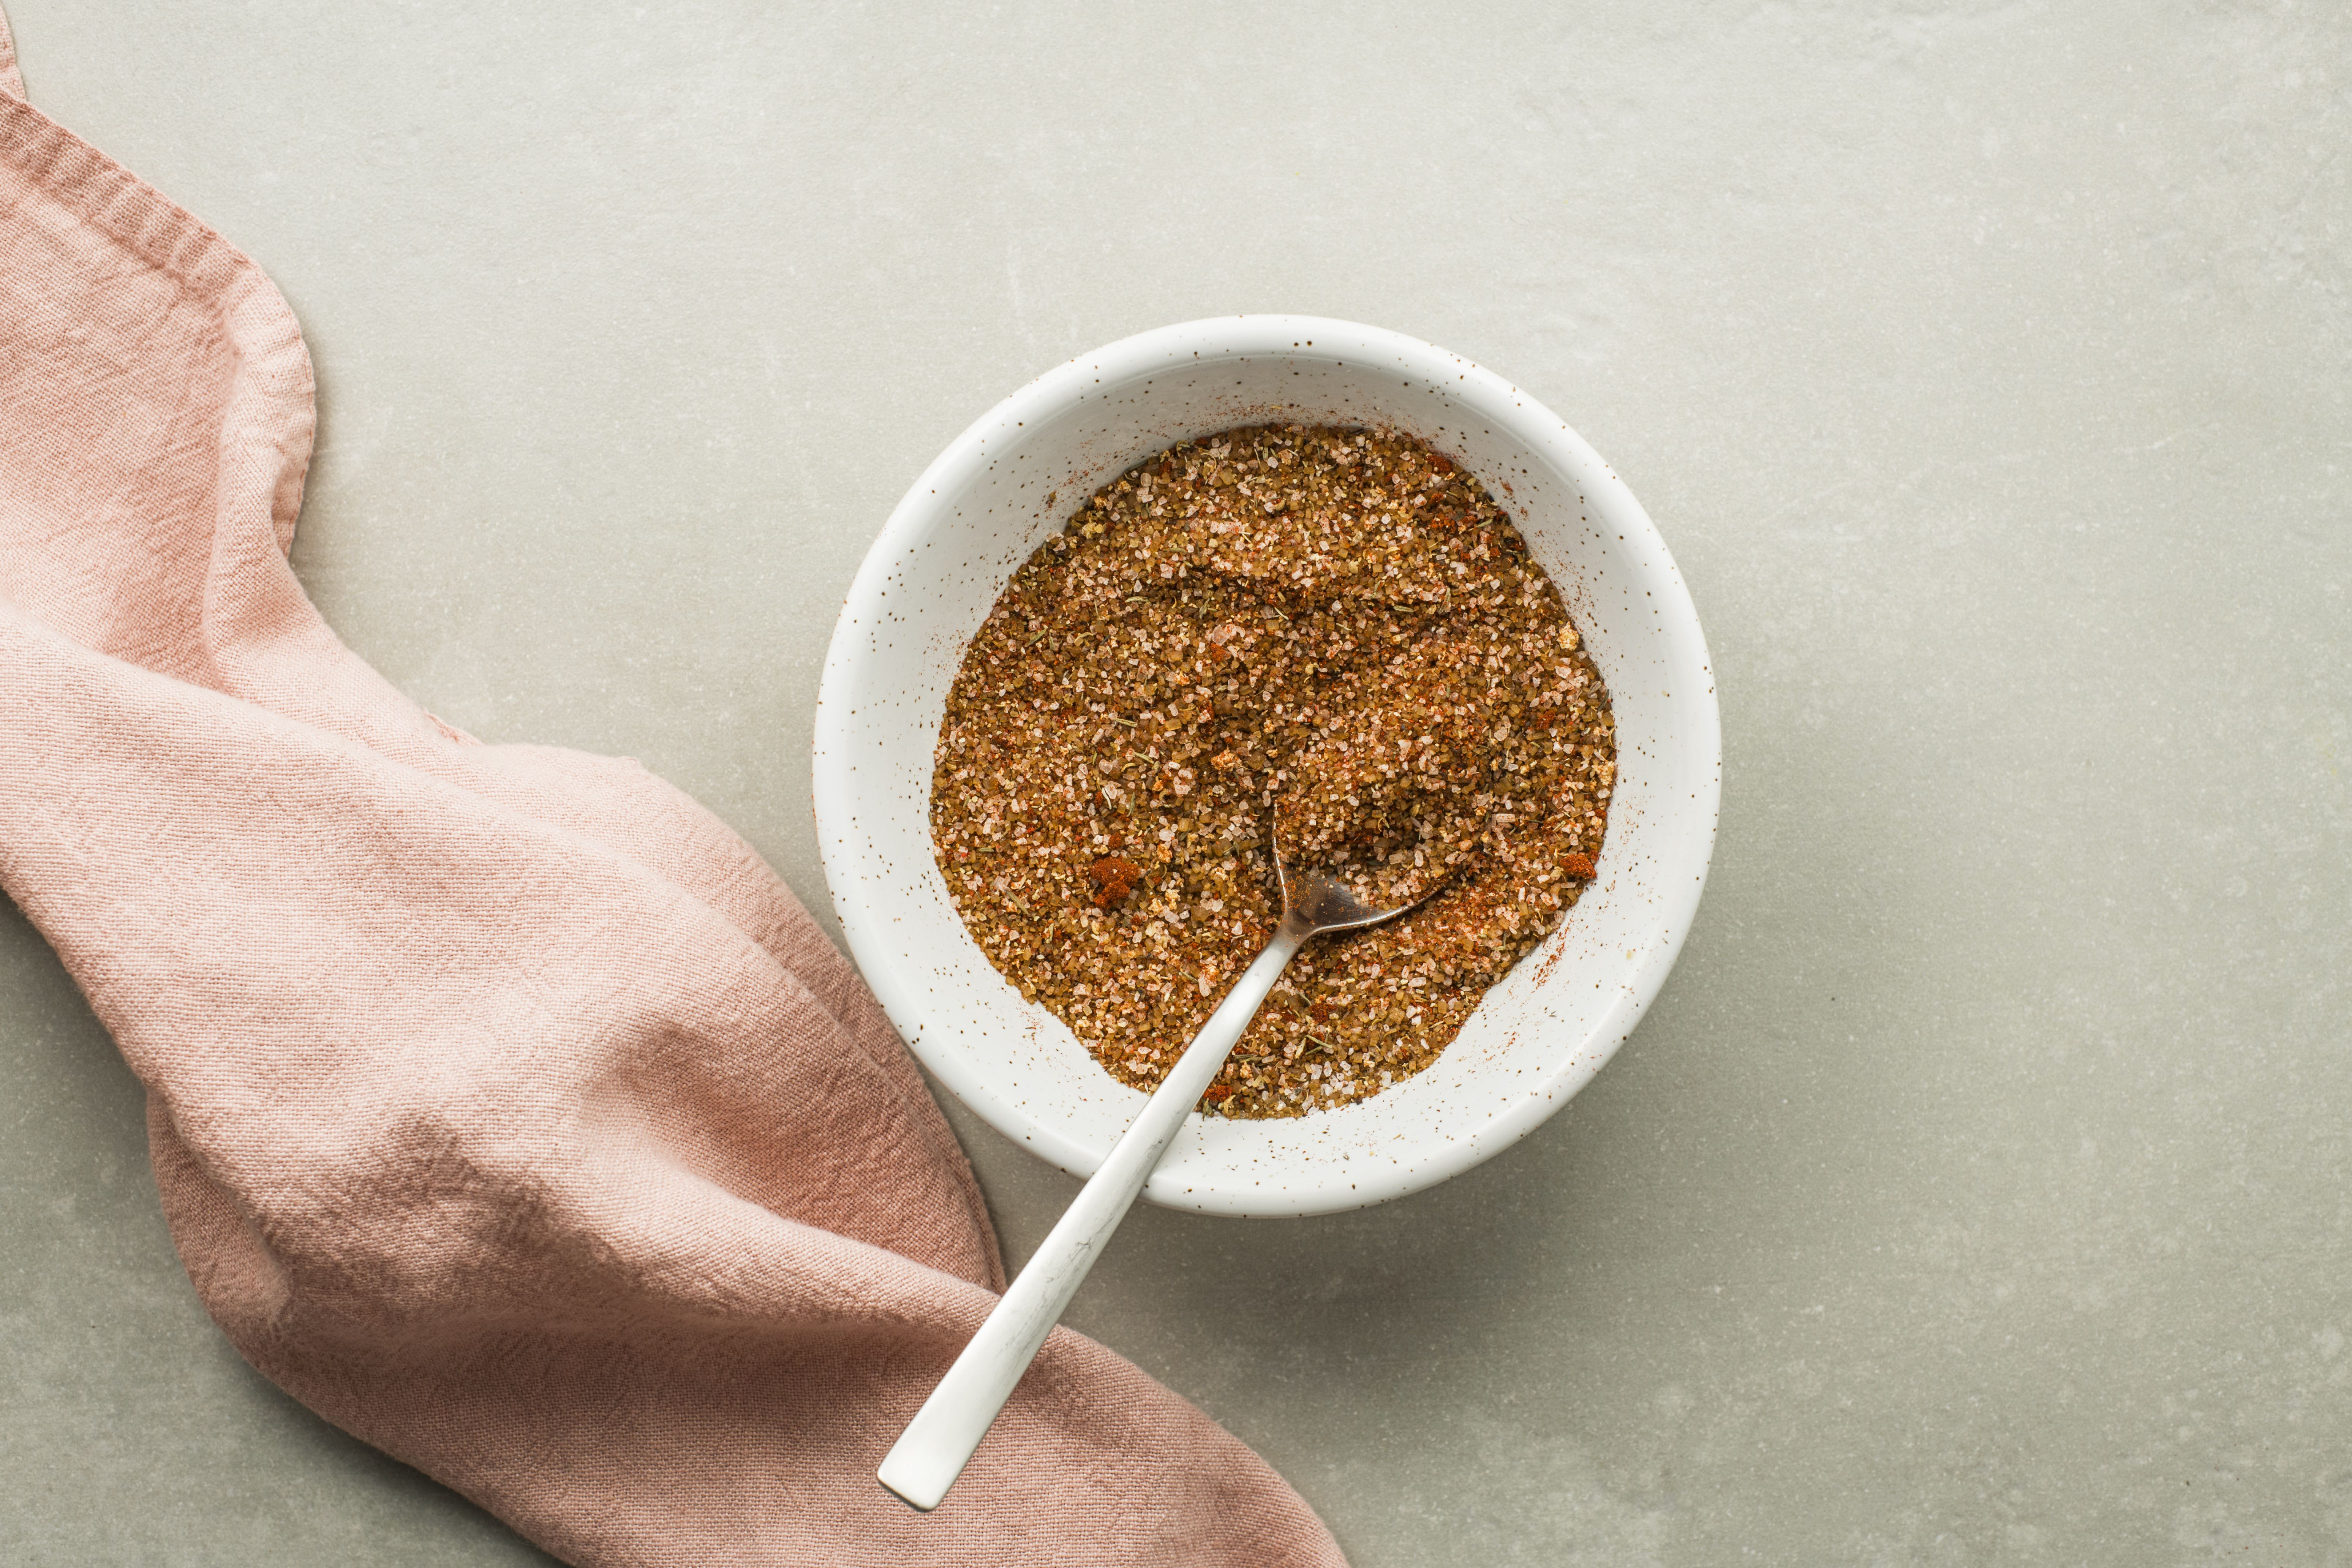 Spice rub ingredients in a bowl